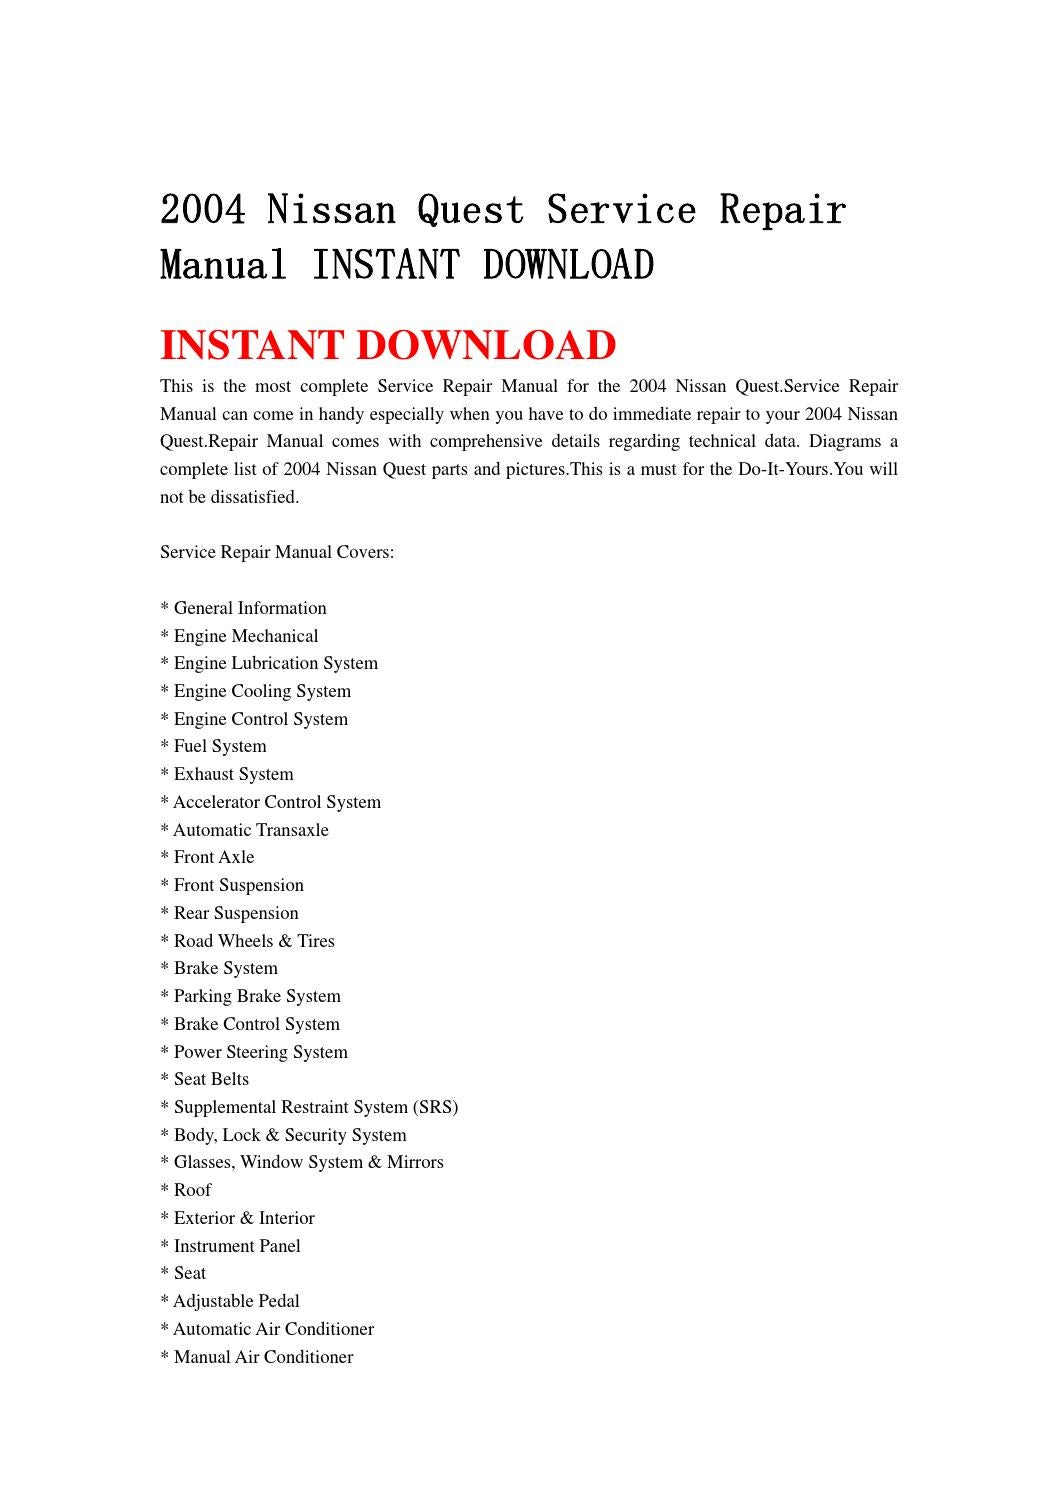 hight resolution of 2004 nissan quest service repair manual instant download by jdfhnsenn issuu